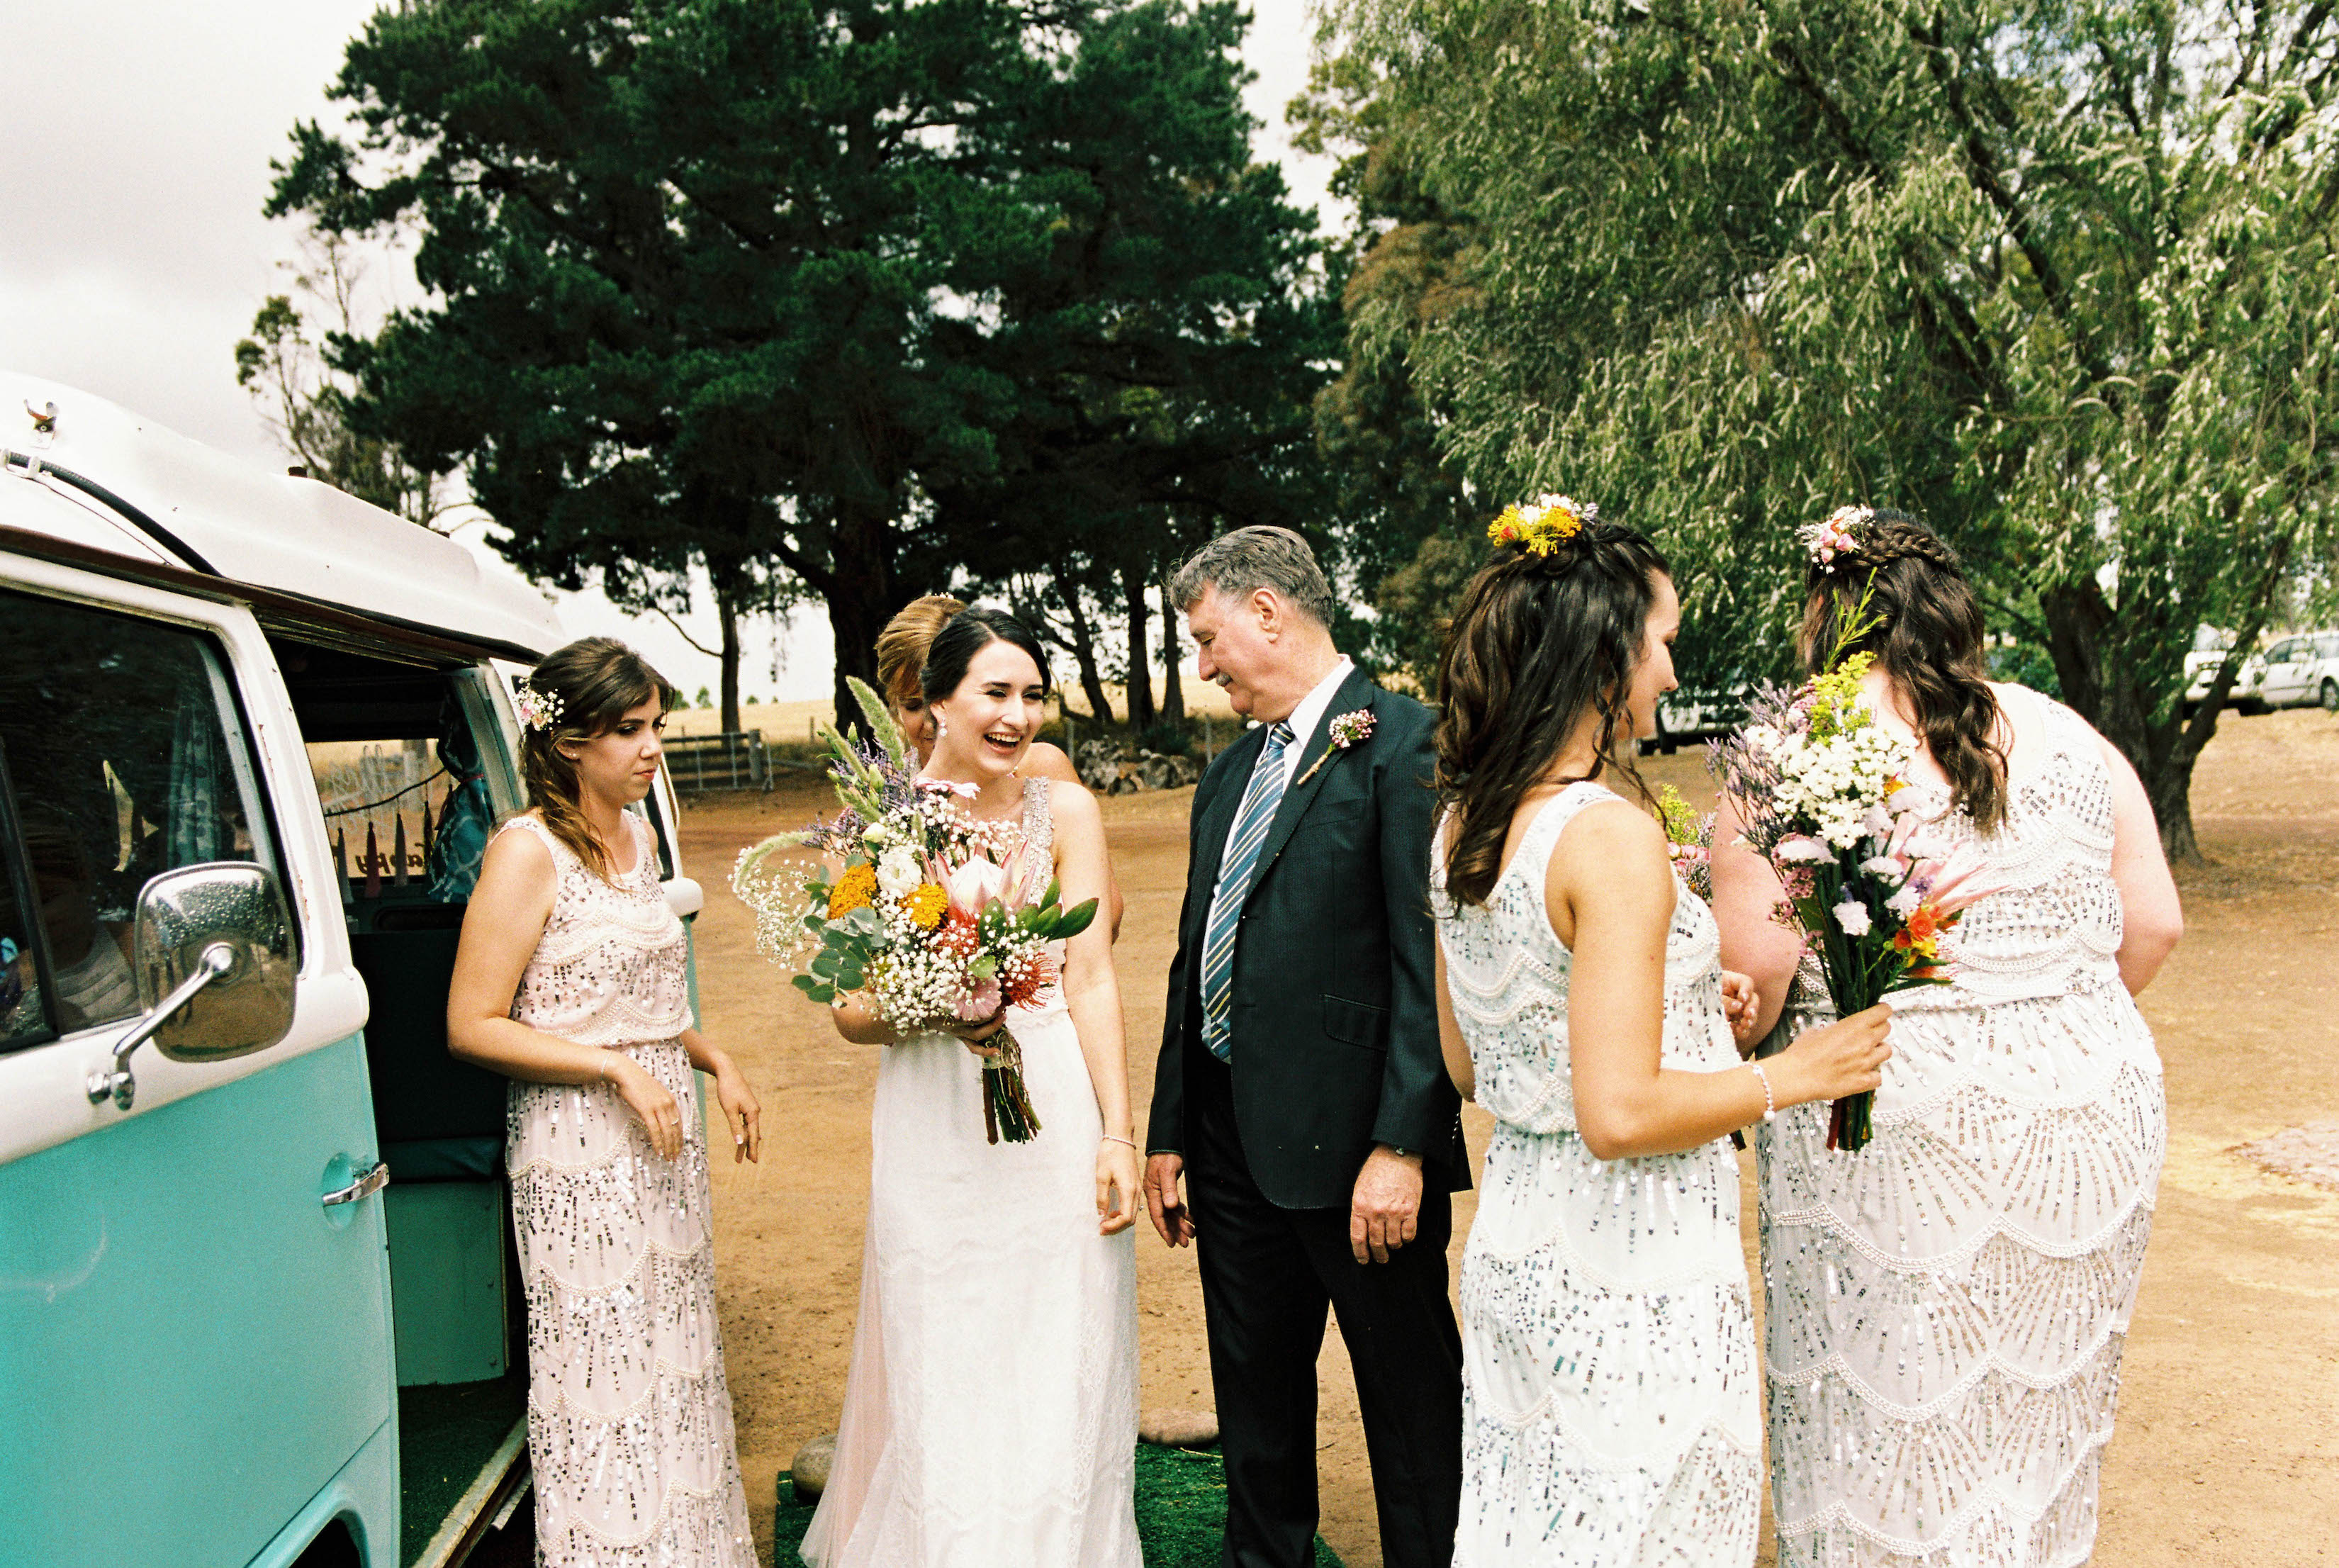 The bride greets her father after stepping out of the car on her wedding day at the family farm